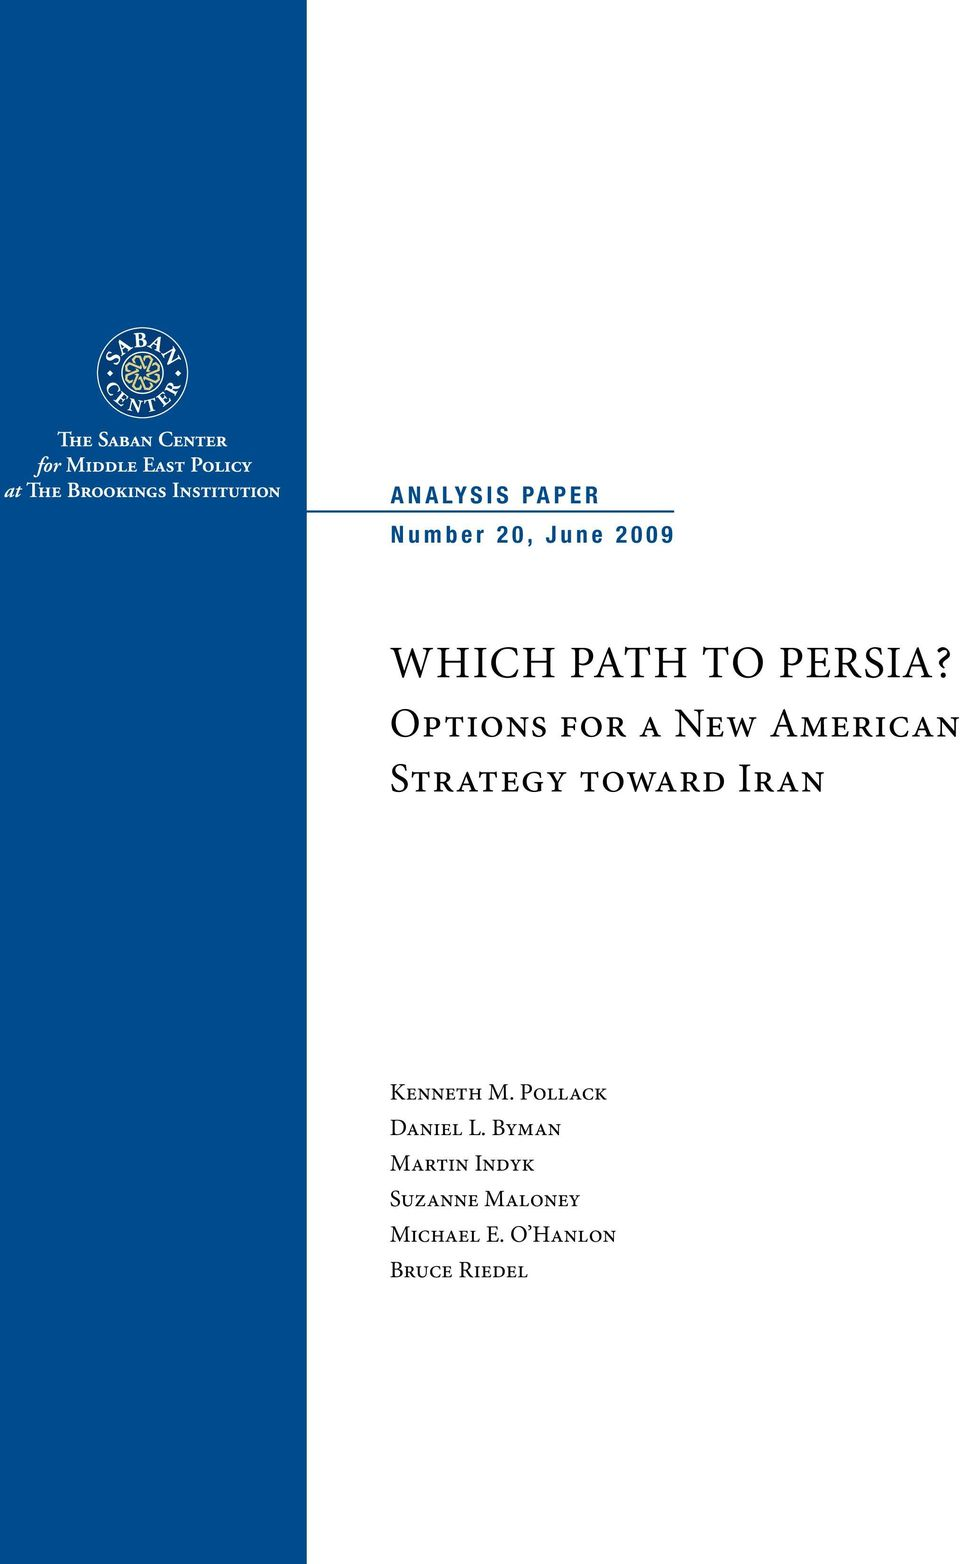 Options for a New American Strategy toward Iran Kenneth